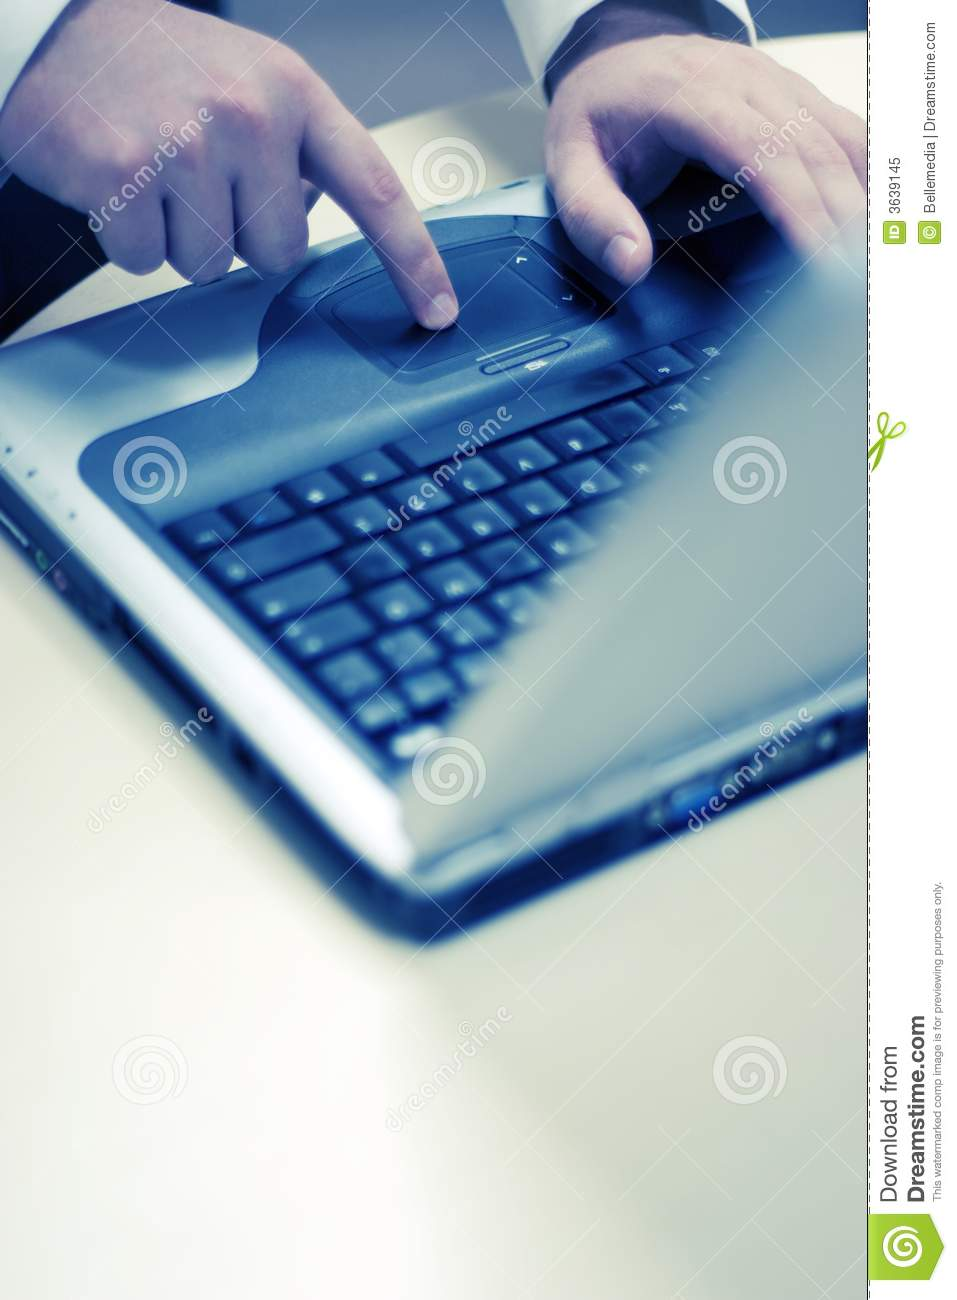 Touching laptop